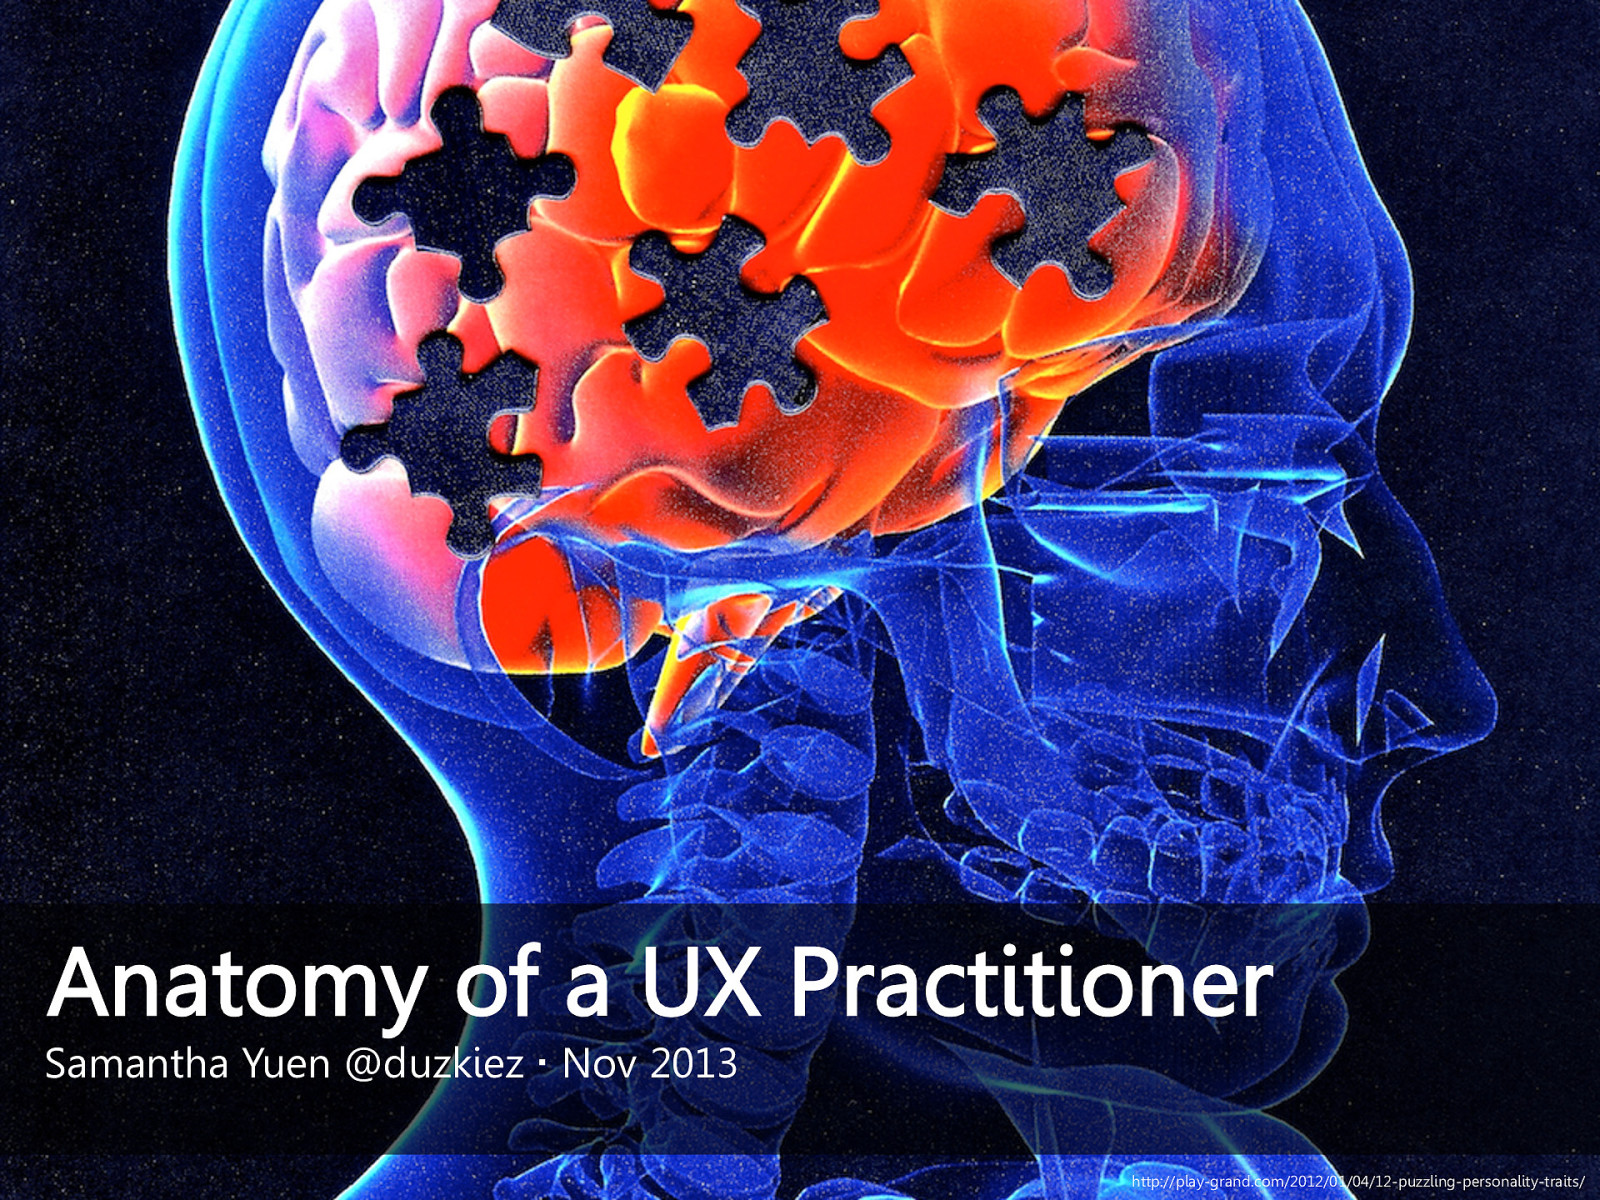 Anatomy of a UX practitioner